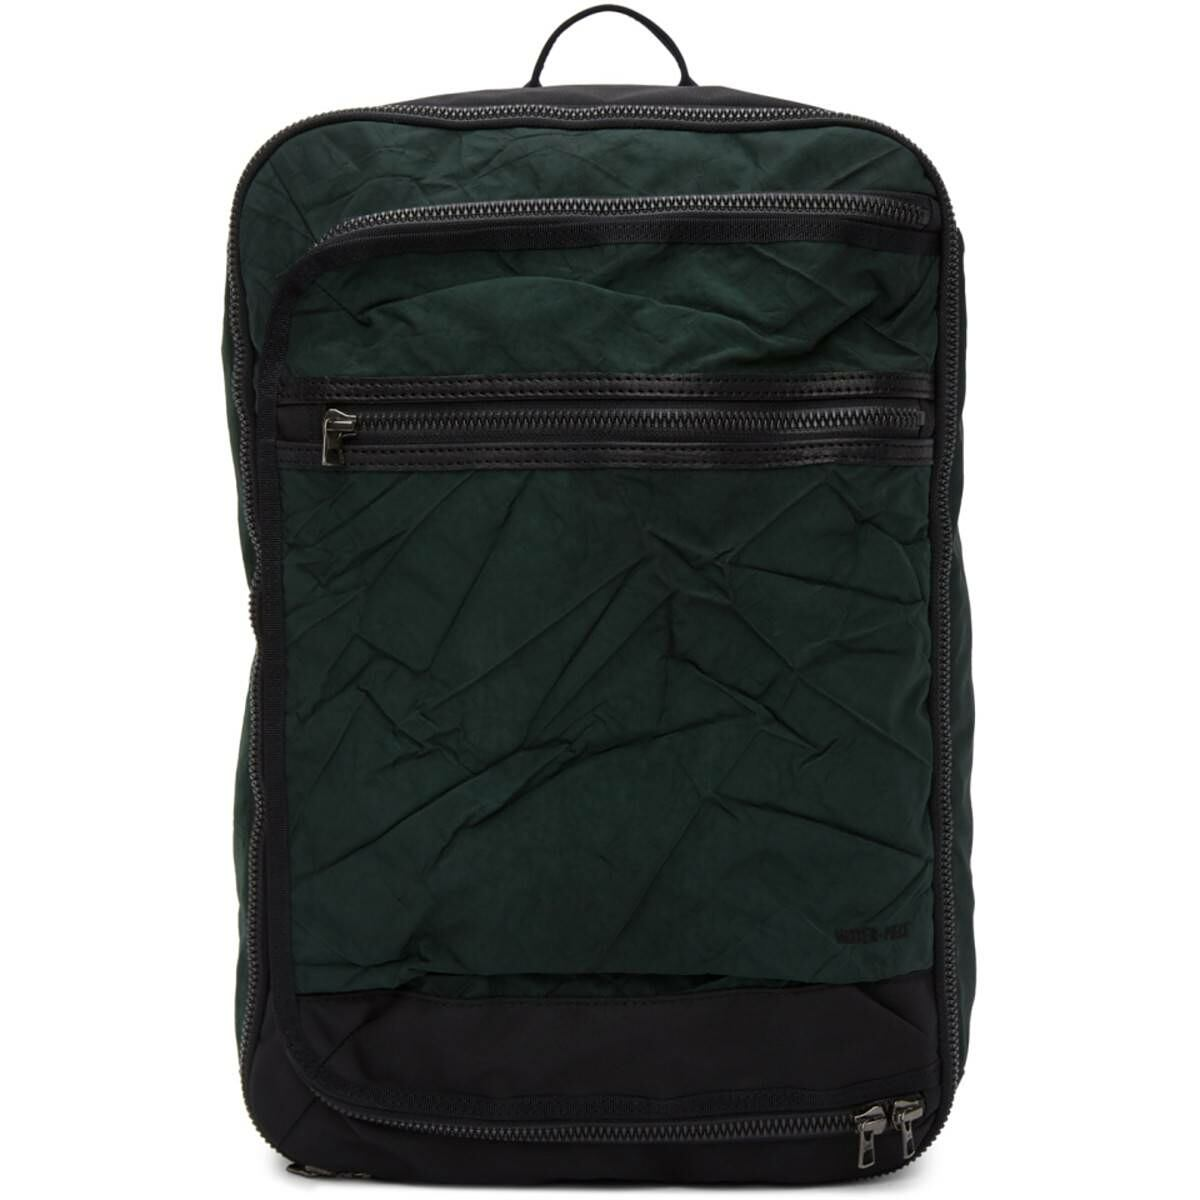 Master-Piece Co Khaki Rebirth Project Edition Recycled Airbag Backpack Ssense USA MEN Men ACCESSORIES Mens BAGS